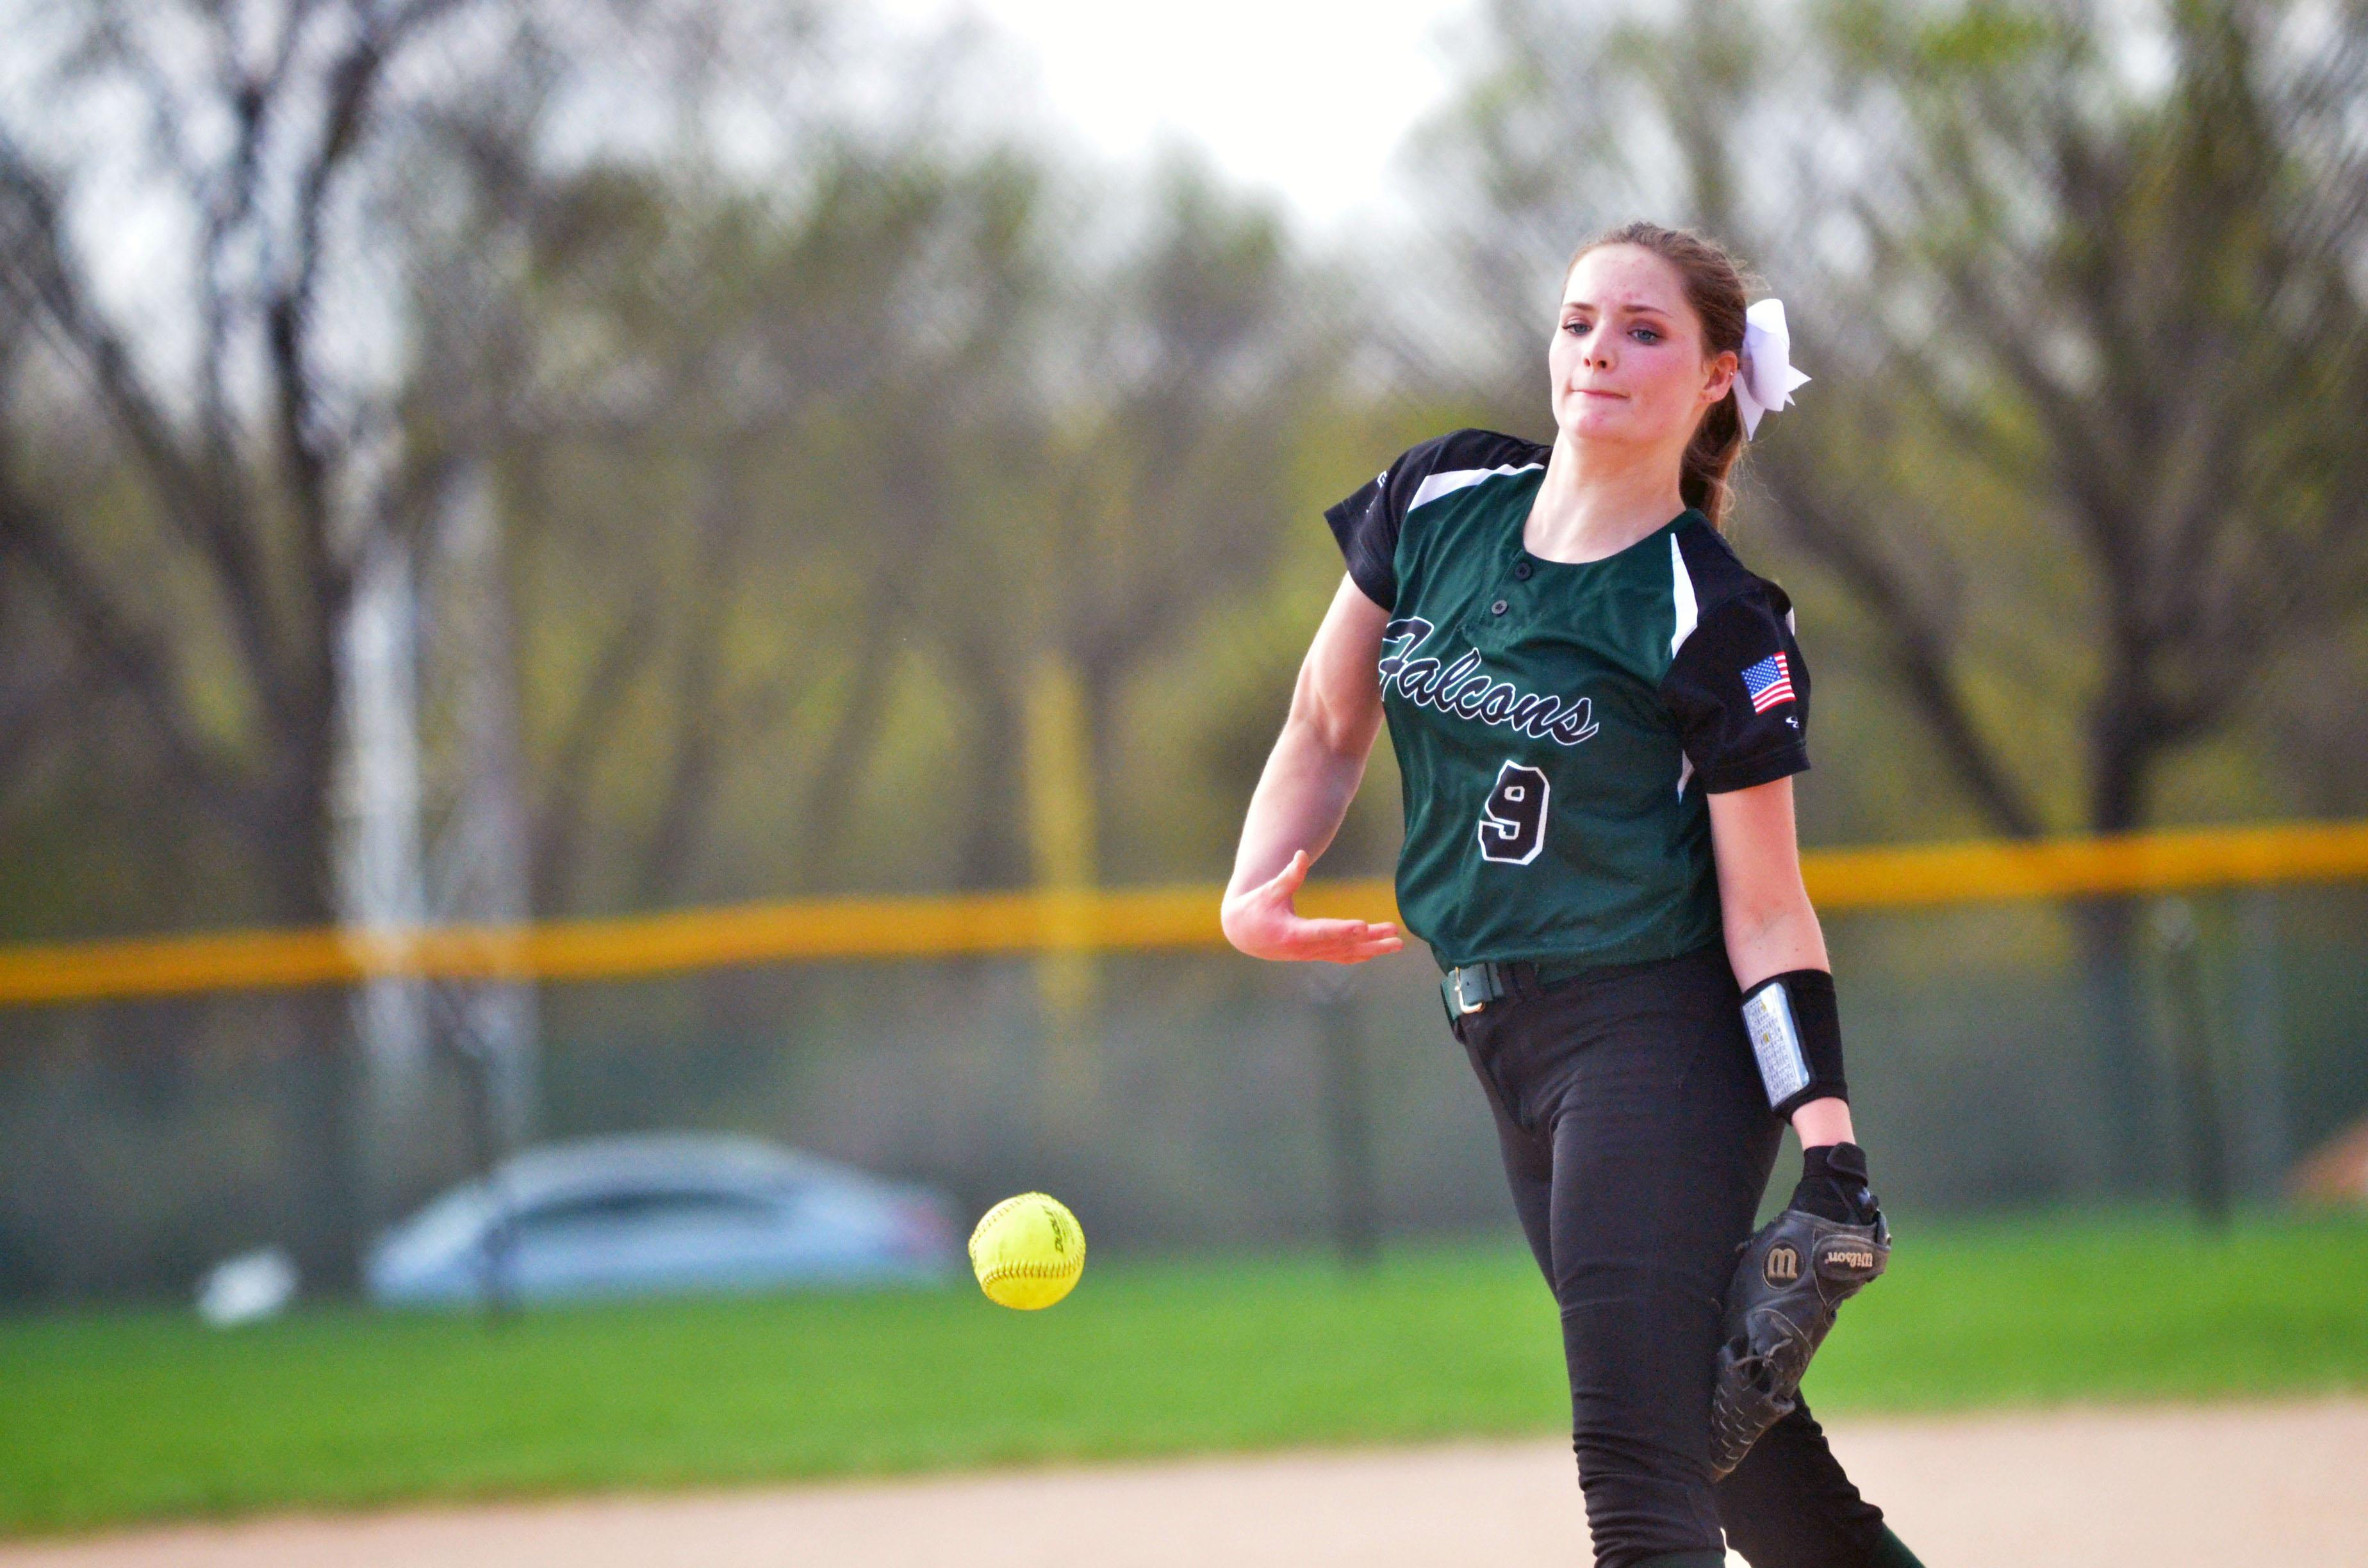 Faribault is in the state tournament for the first time in school history and is the No. 1 seed in Class 3A. The Falcons will open tournament play against Bemidji. Photo by Mike Randleman, Faribault Daily News